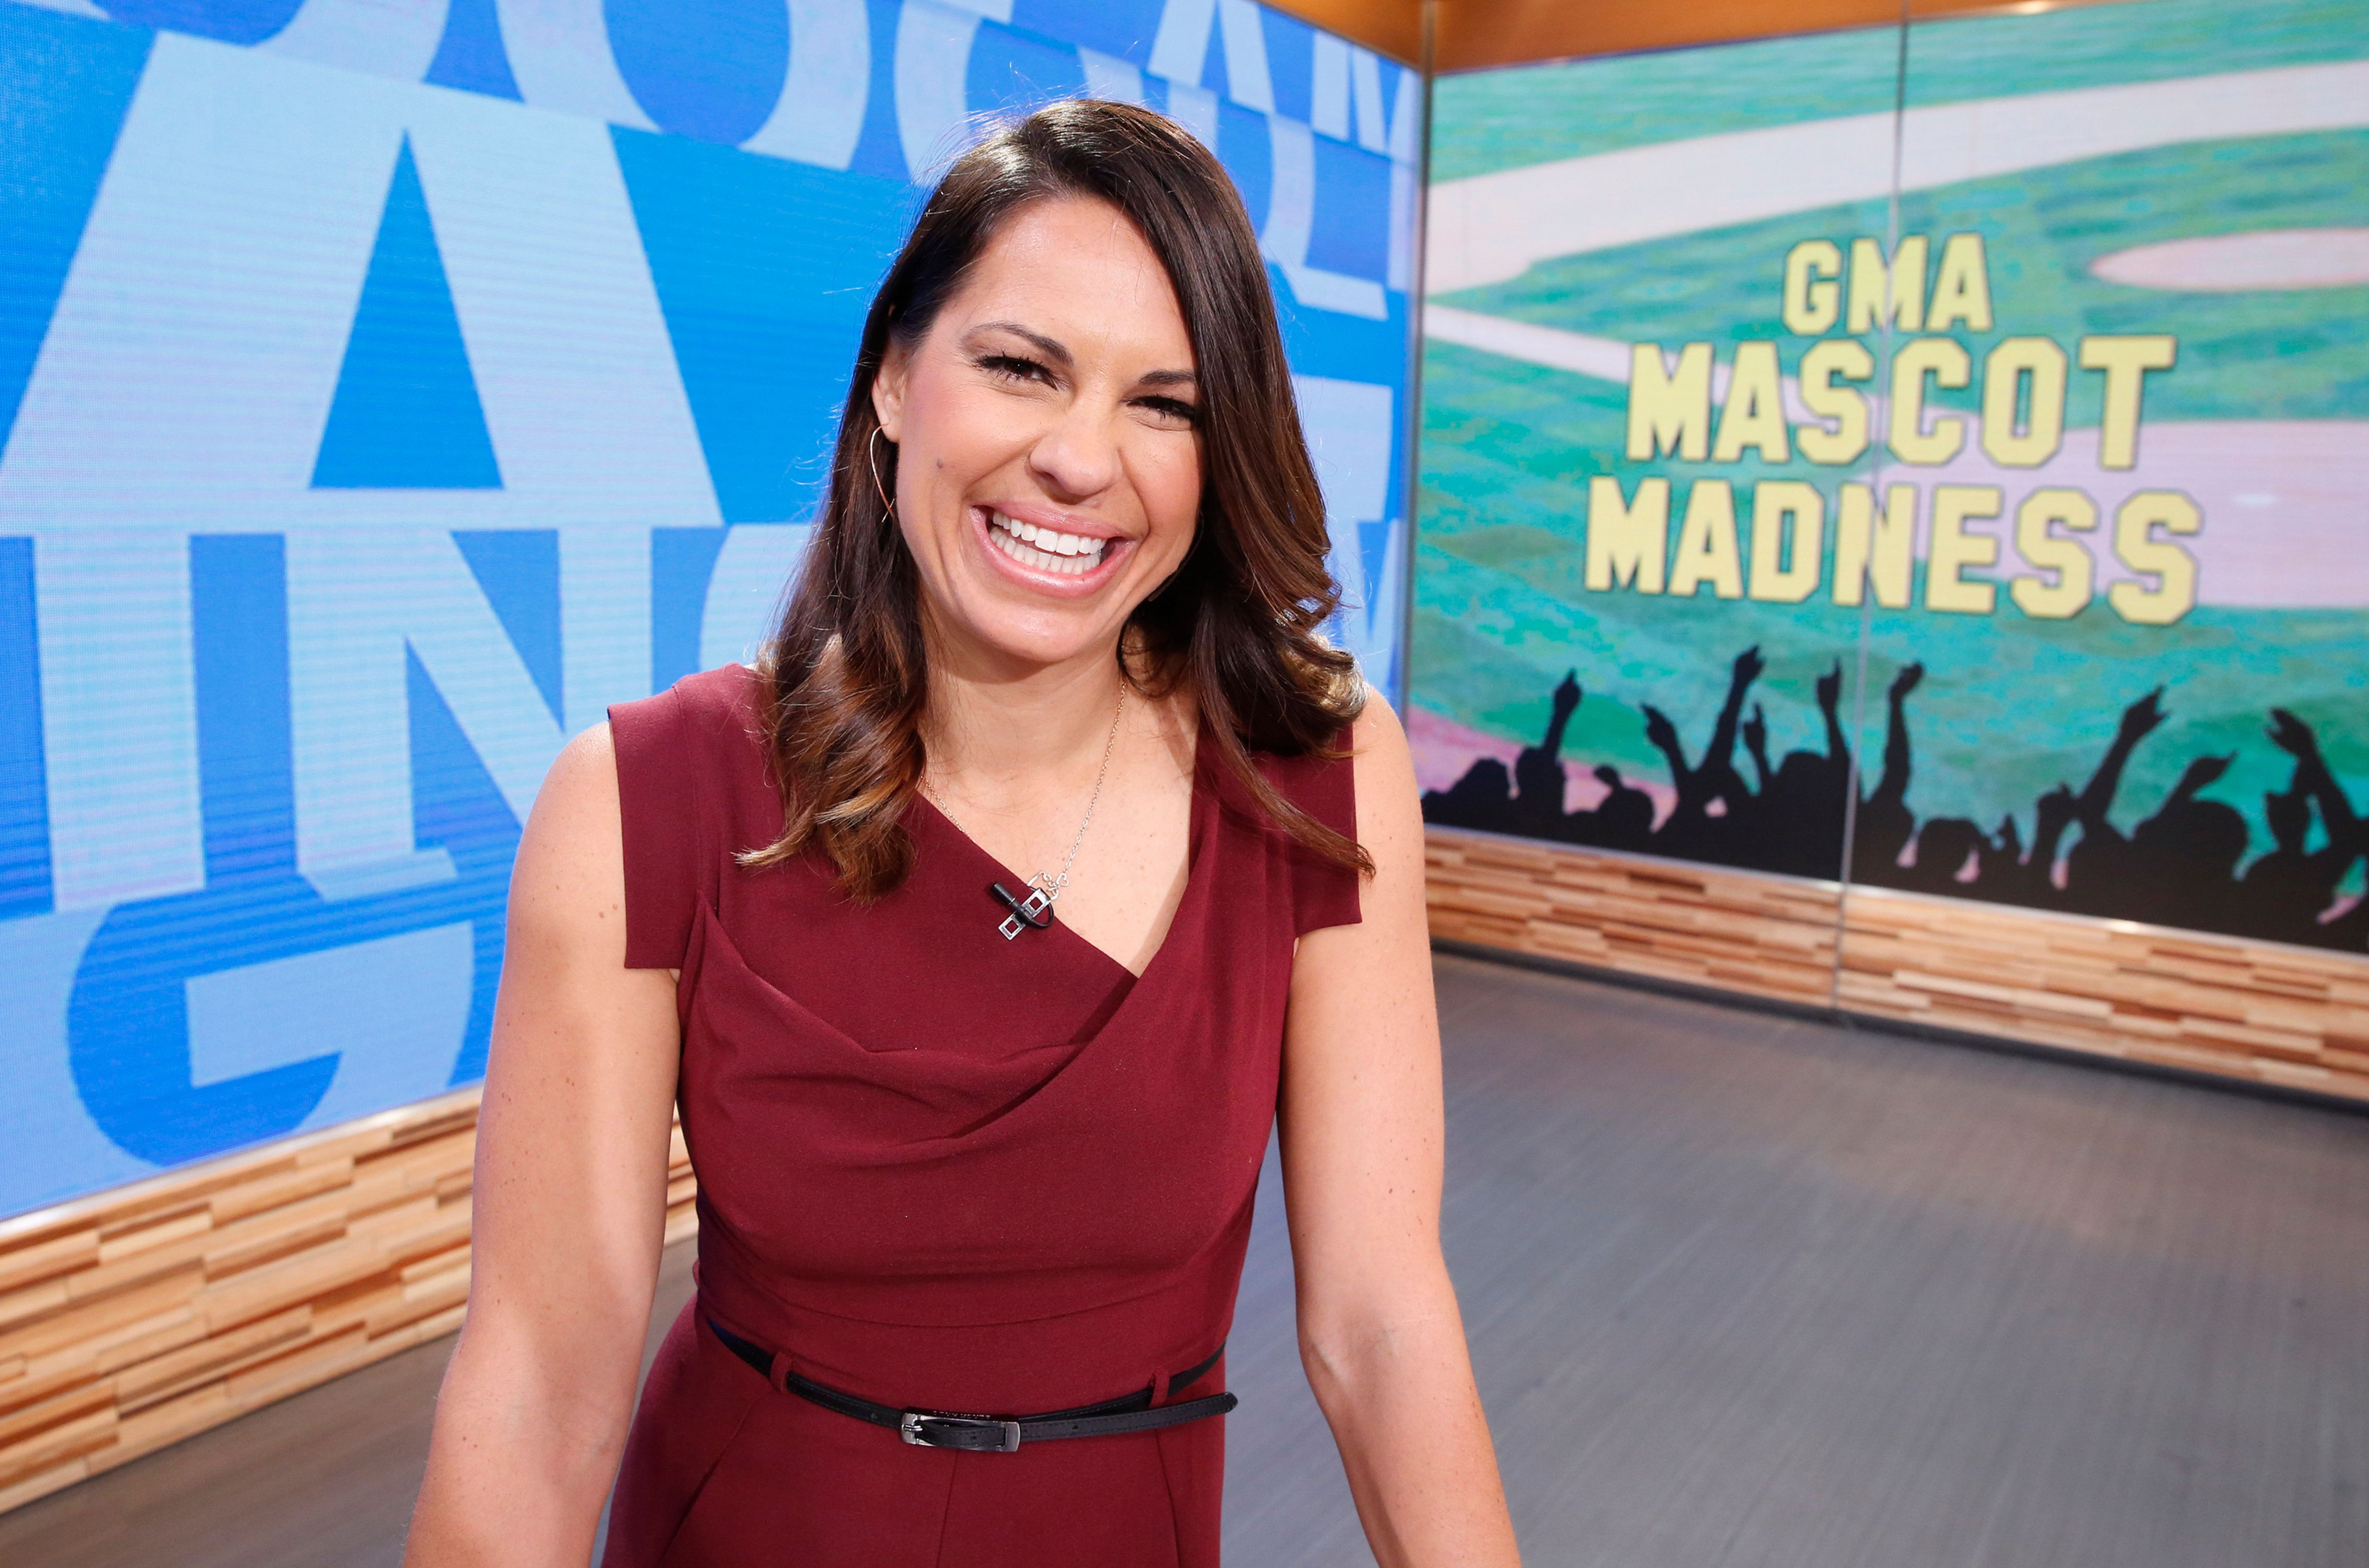 GOOD MORNING AMERICA - Jessica Mendoza of ESPN and the mascots of the MLB kick off baseball season on 'Good Morning America,' 4/1/16, airing on the ABC Television Network.   (Photo by Heidi Gutman/ABC via Getty Images)  JESSICA MENDOZA